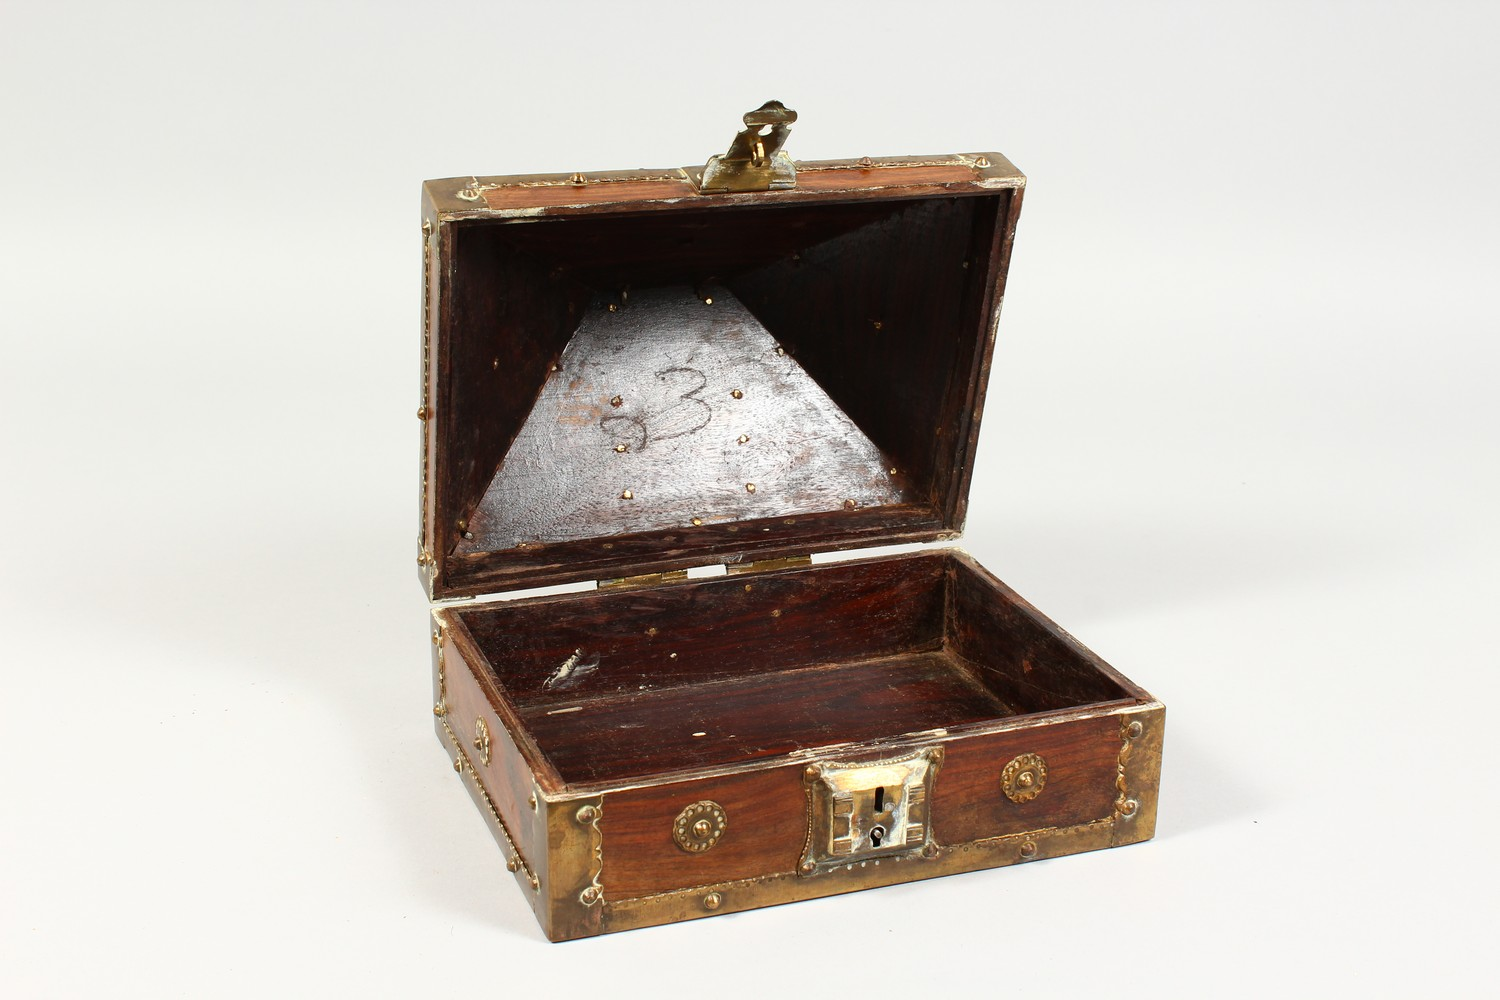 Lot 1356 - AN EASTERN BRASS BOUND WOODEN CASKET. 9ins wide.